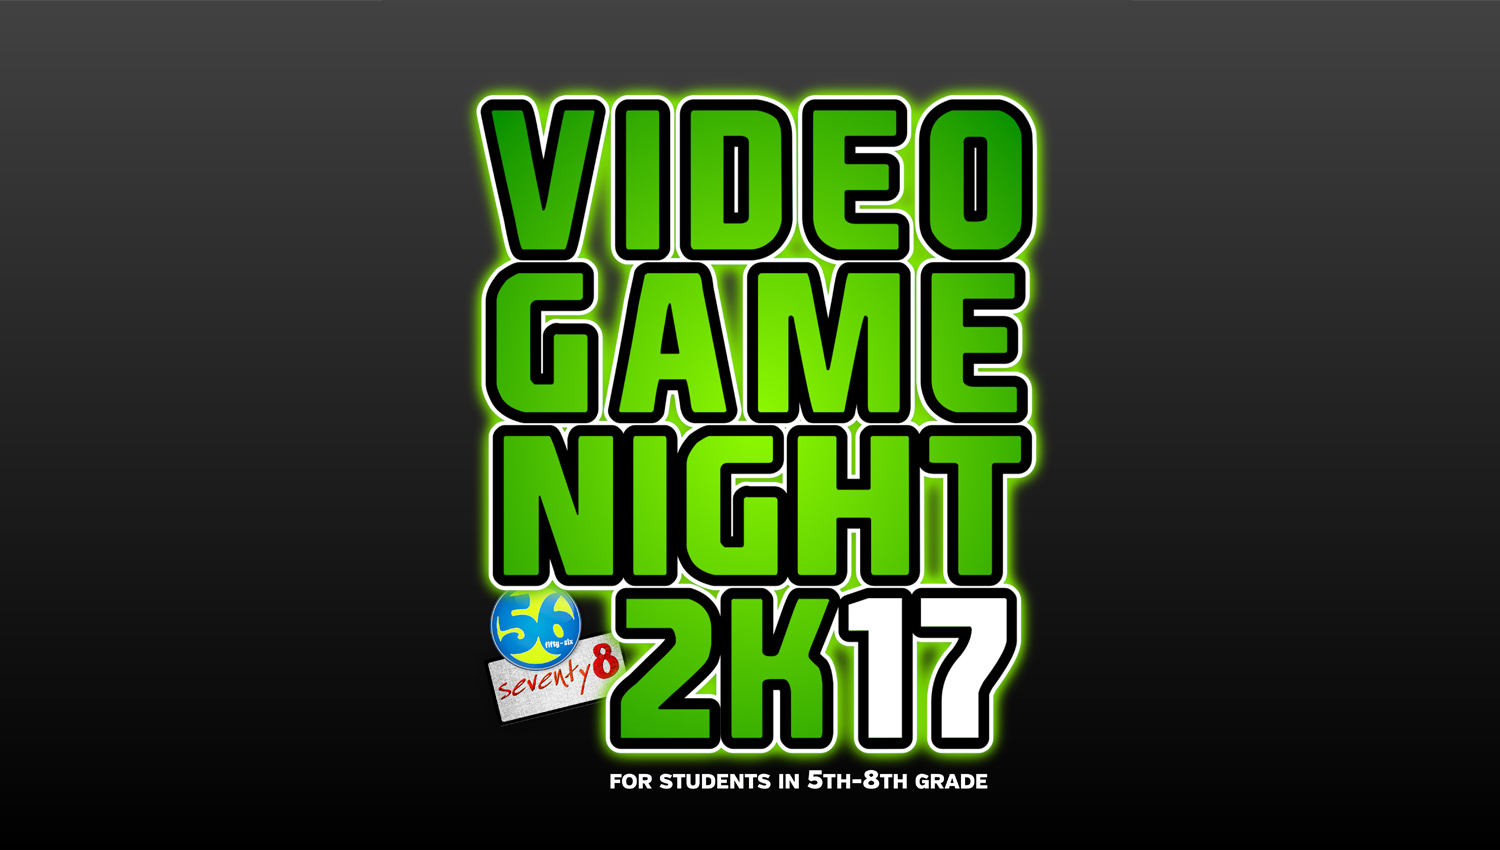 5th-8th Grade Video Game Night 2K17